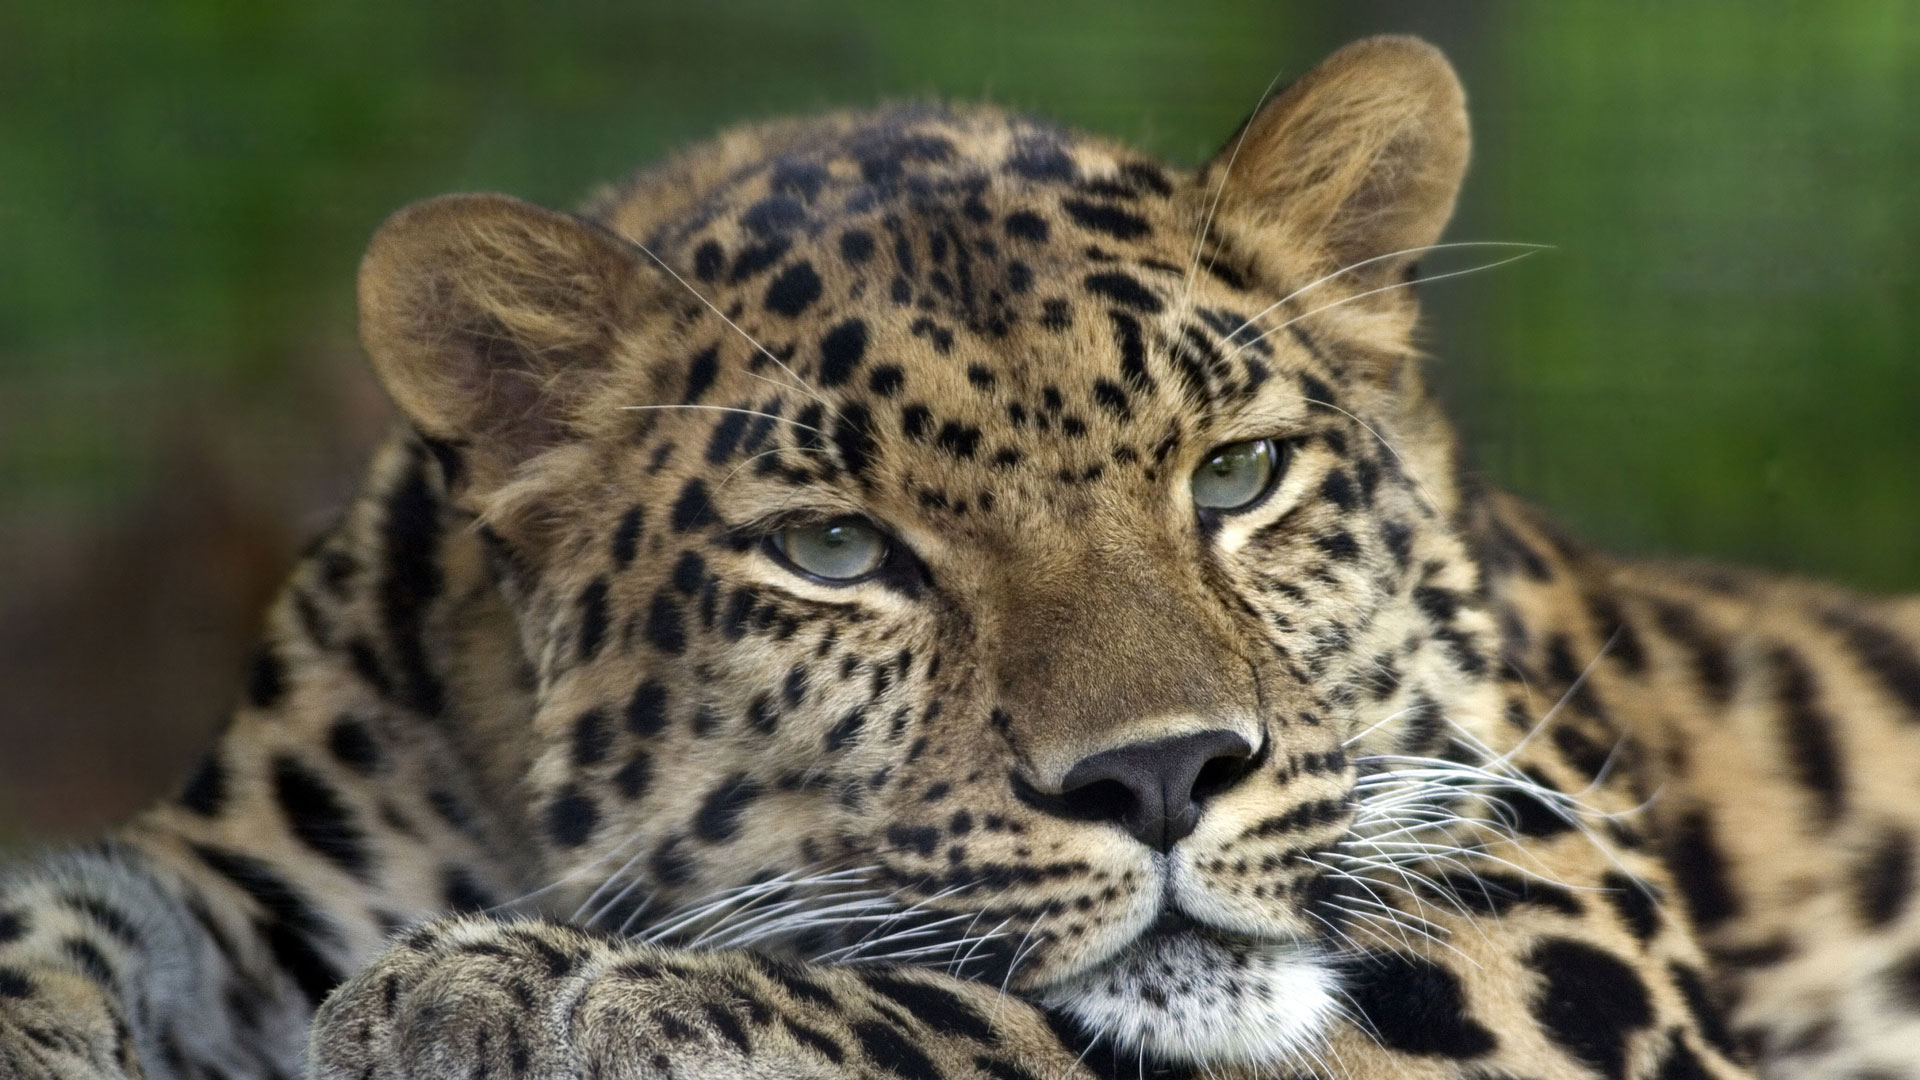 Amur leopard, Colin Hines, Wikimedia Commons